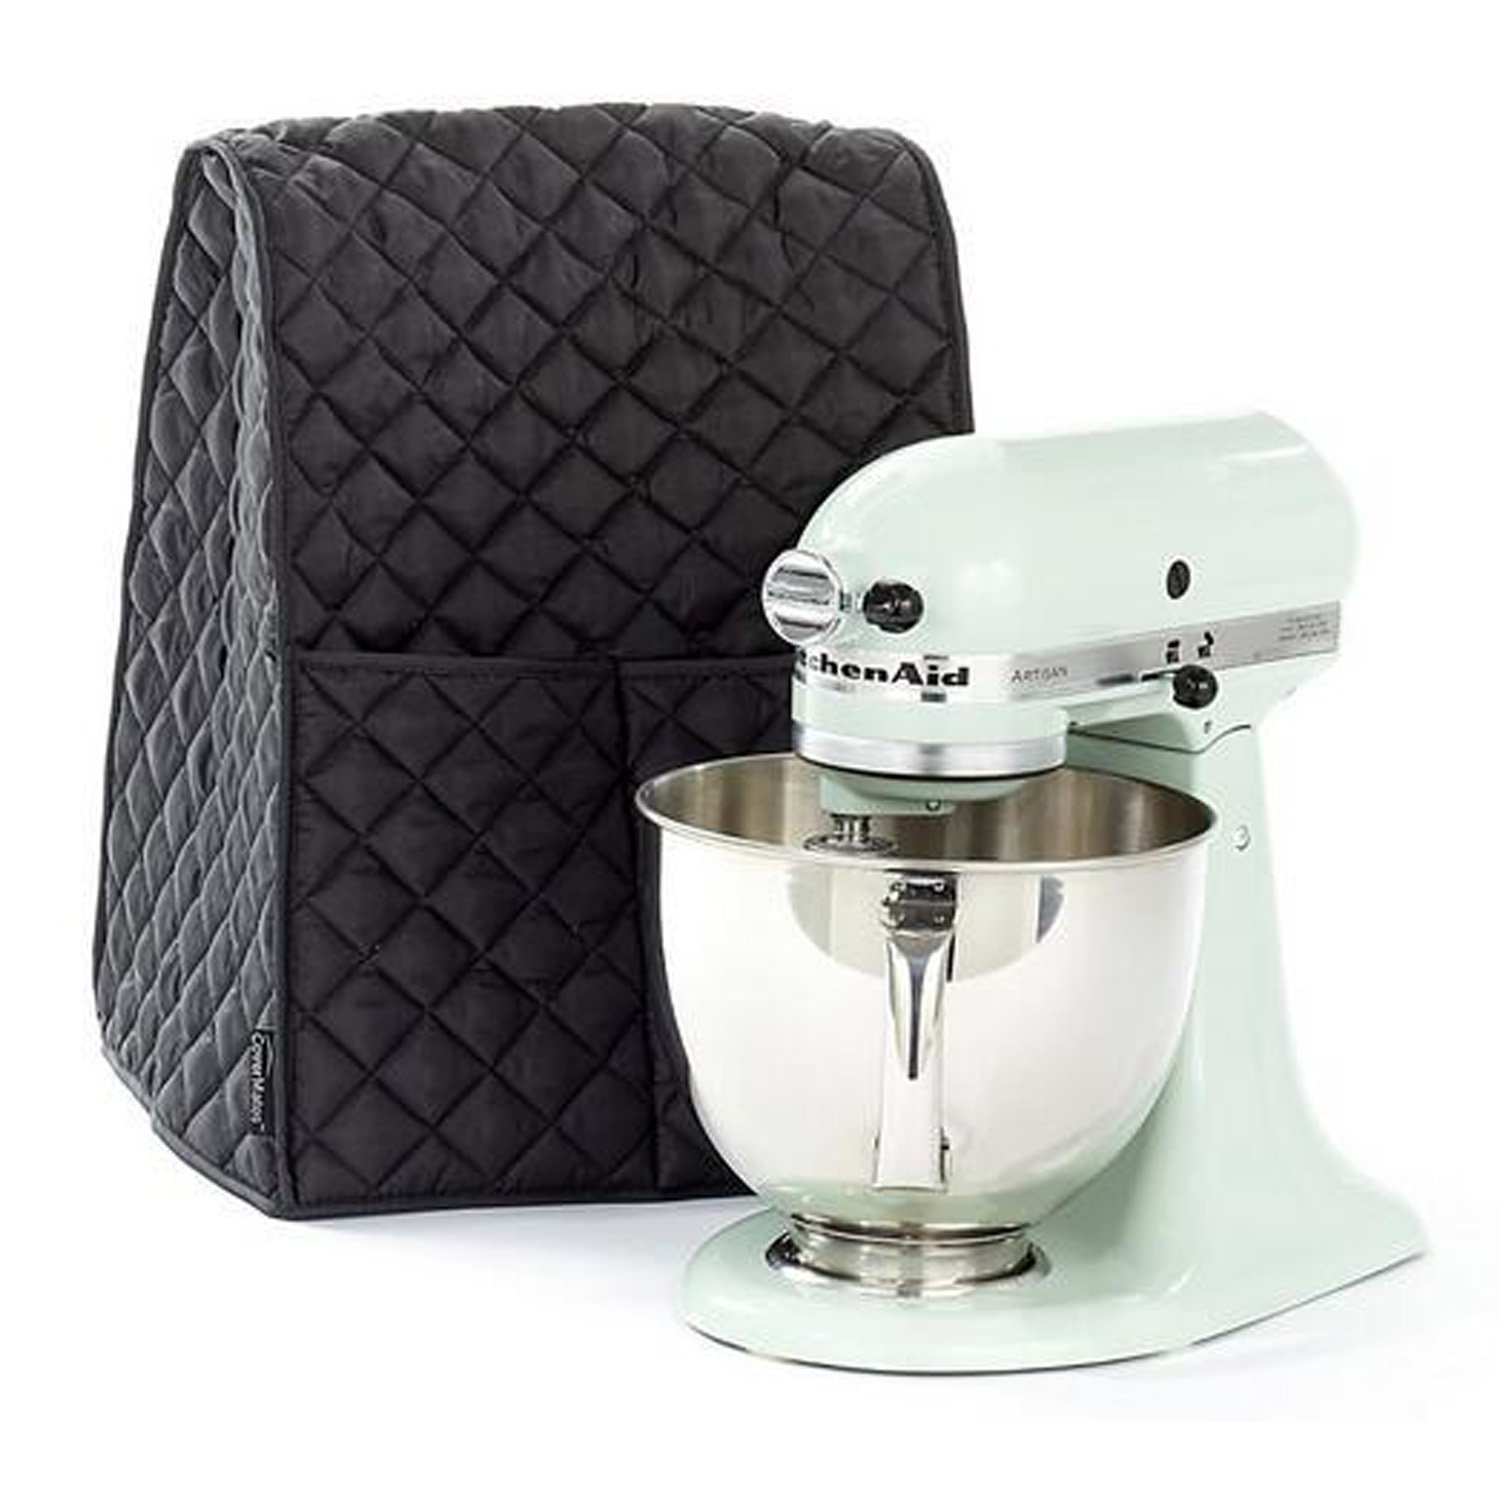 BALFER Stand Mixer Cover Dust-proof with Organizer Bag for Kitchenaid Mixer hg020 Black